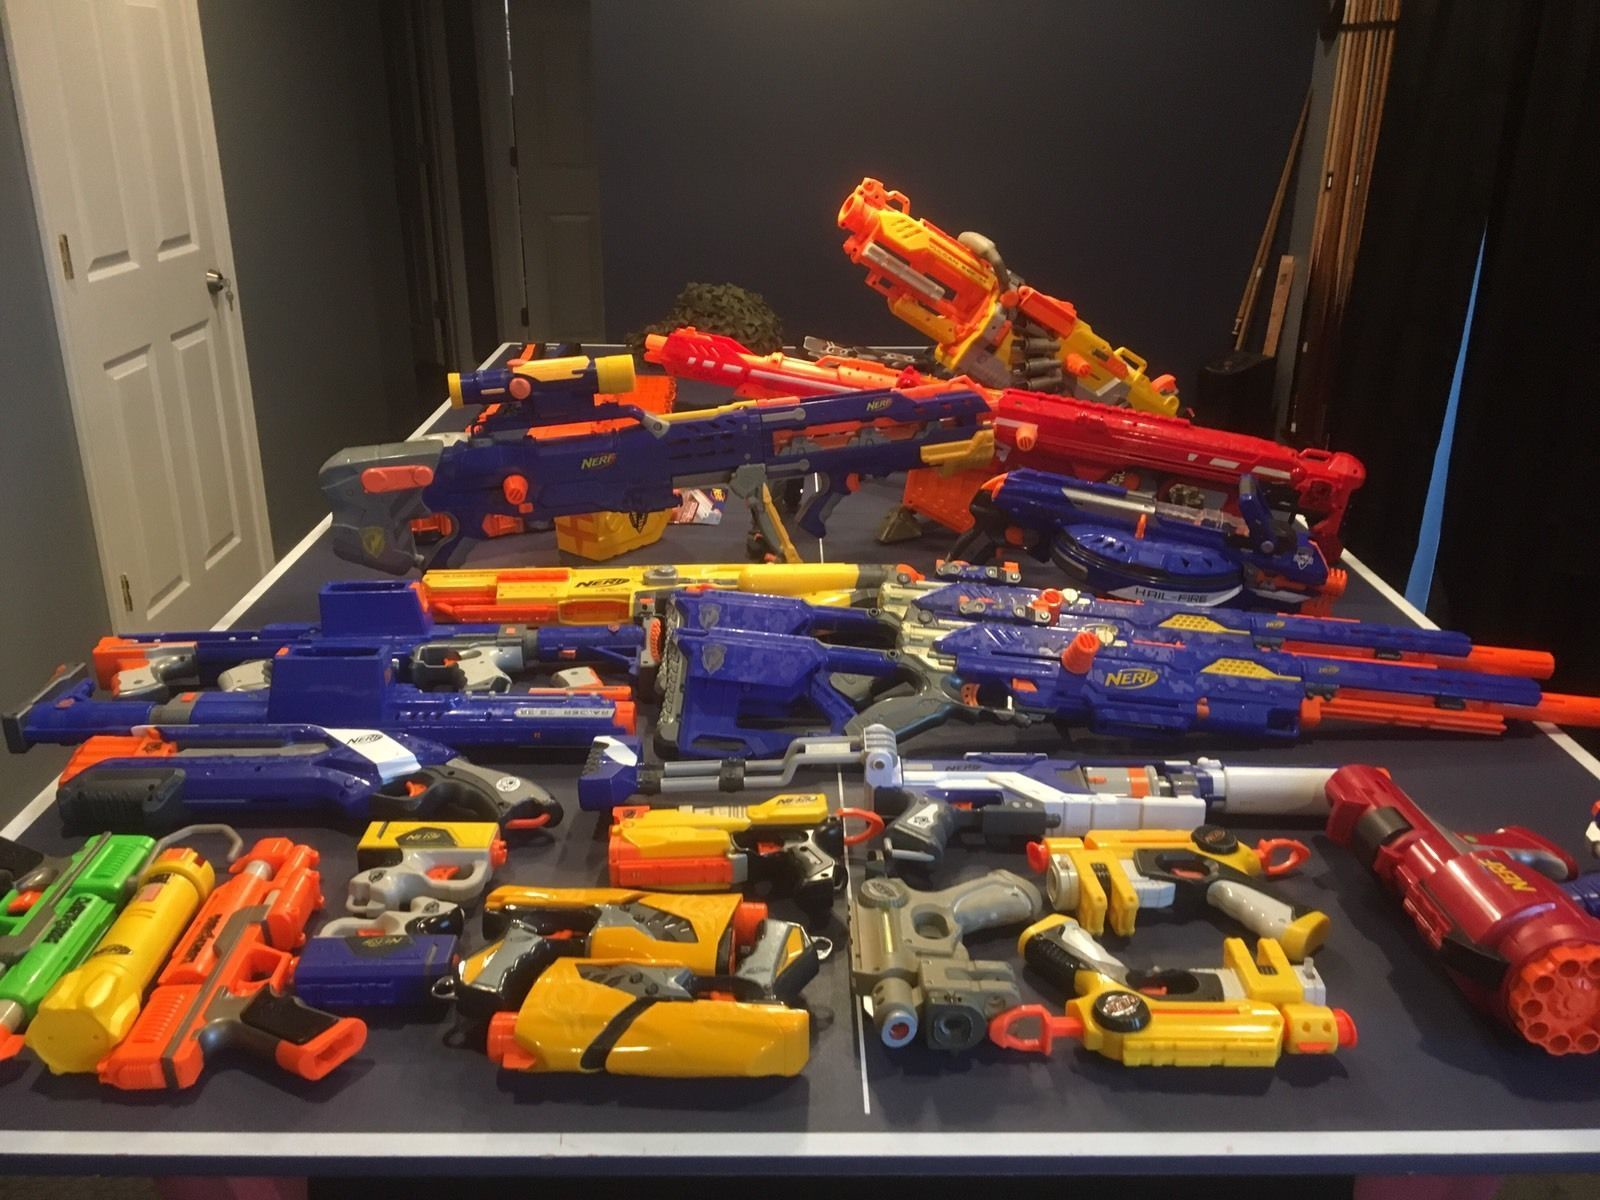 27 Piece Nerf Hand Gun Lot - All Work and in Great Play Condition!